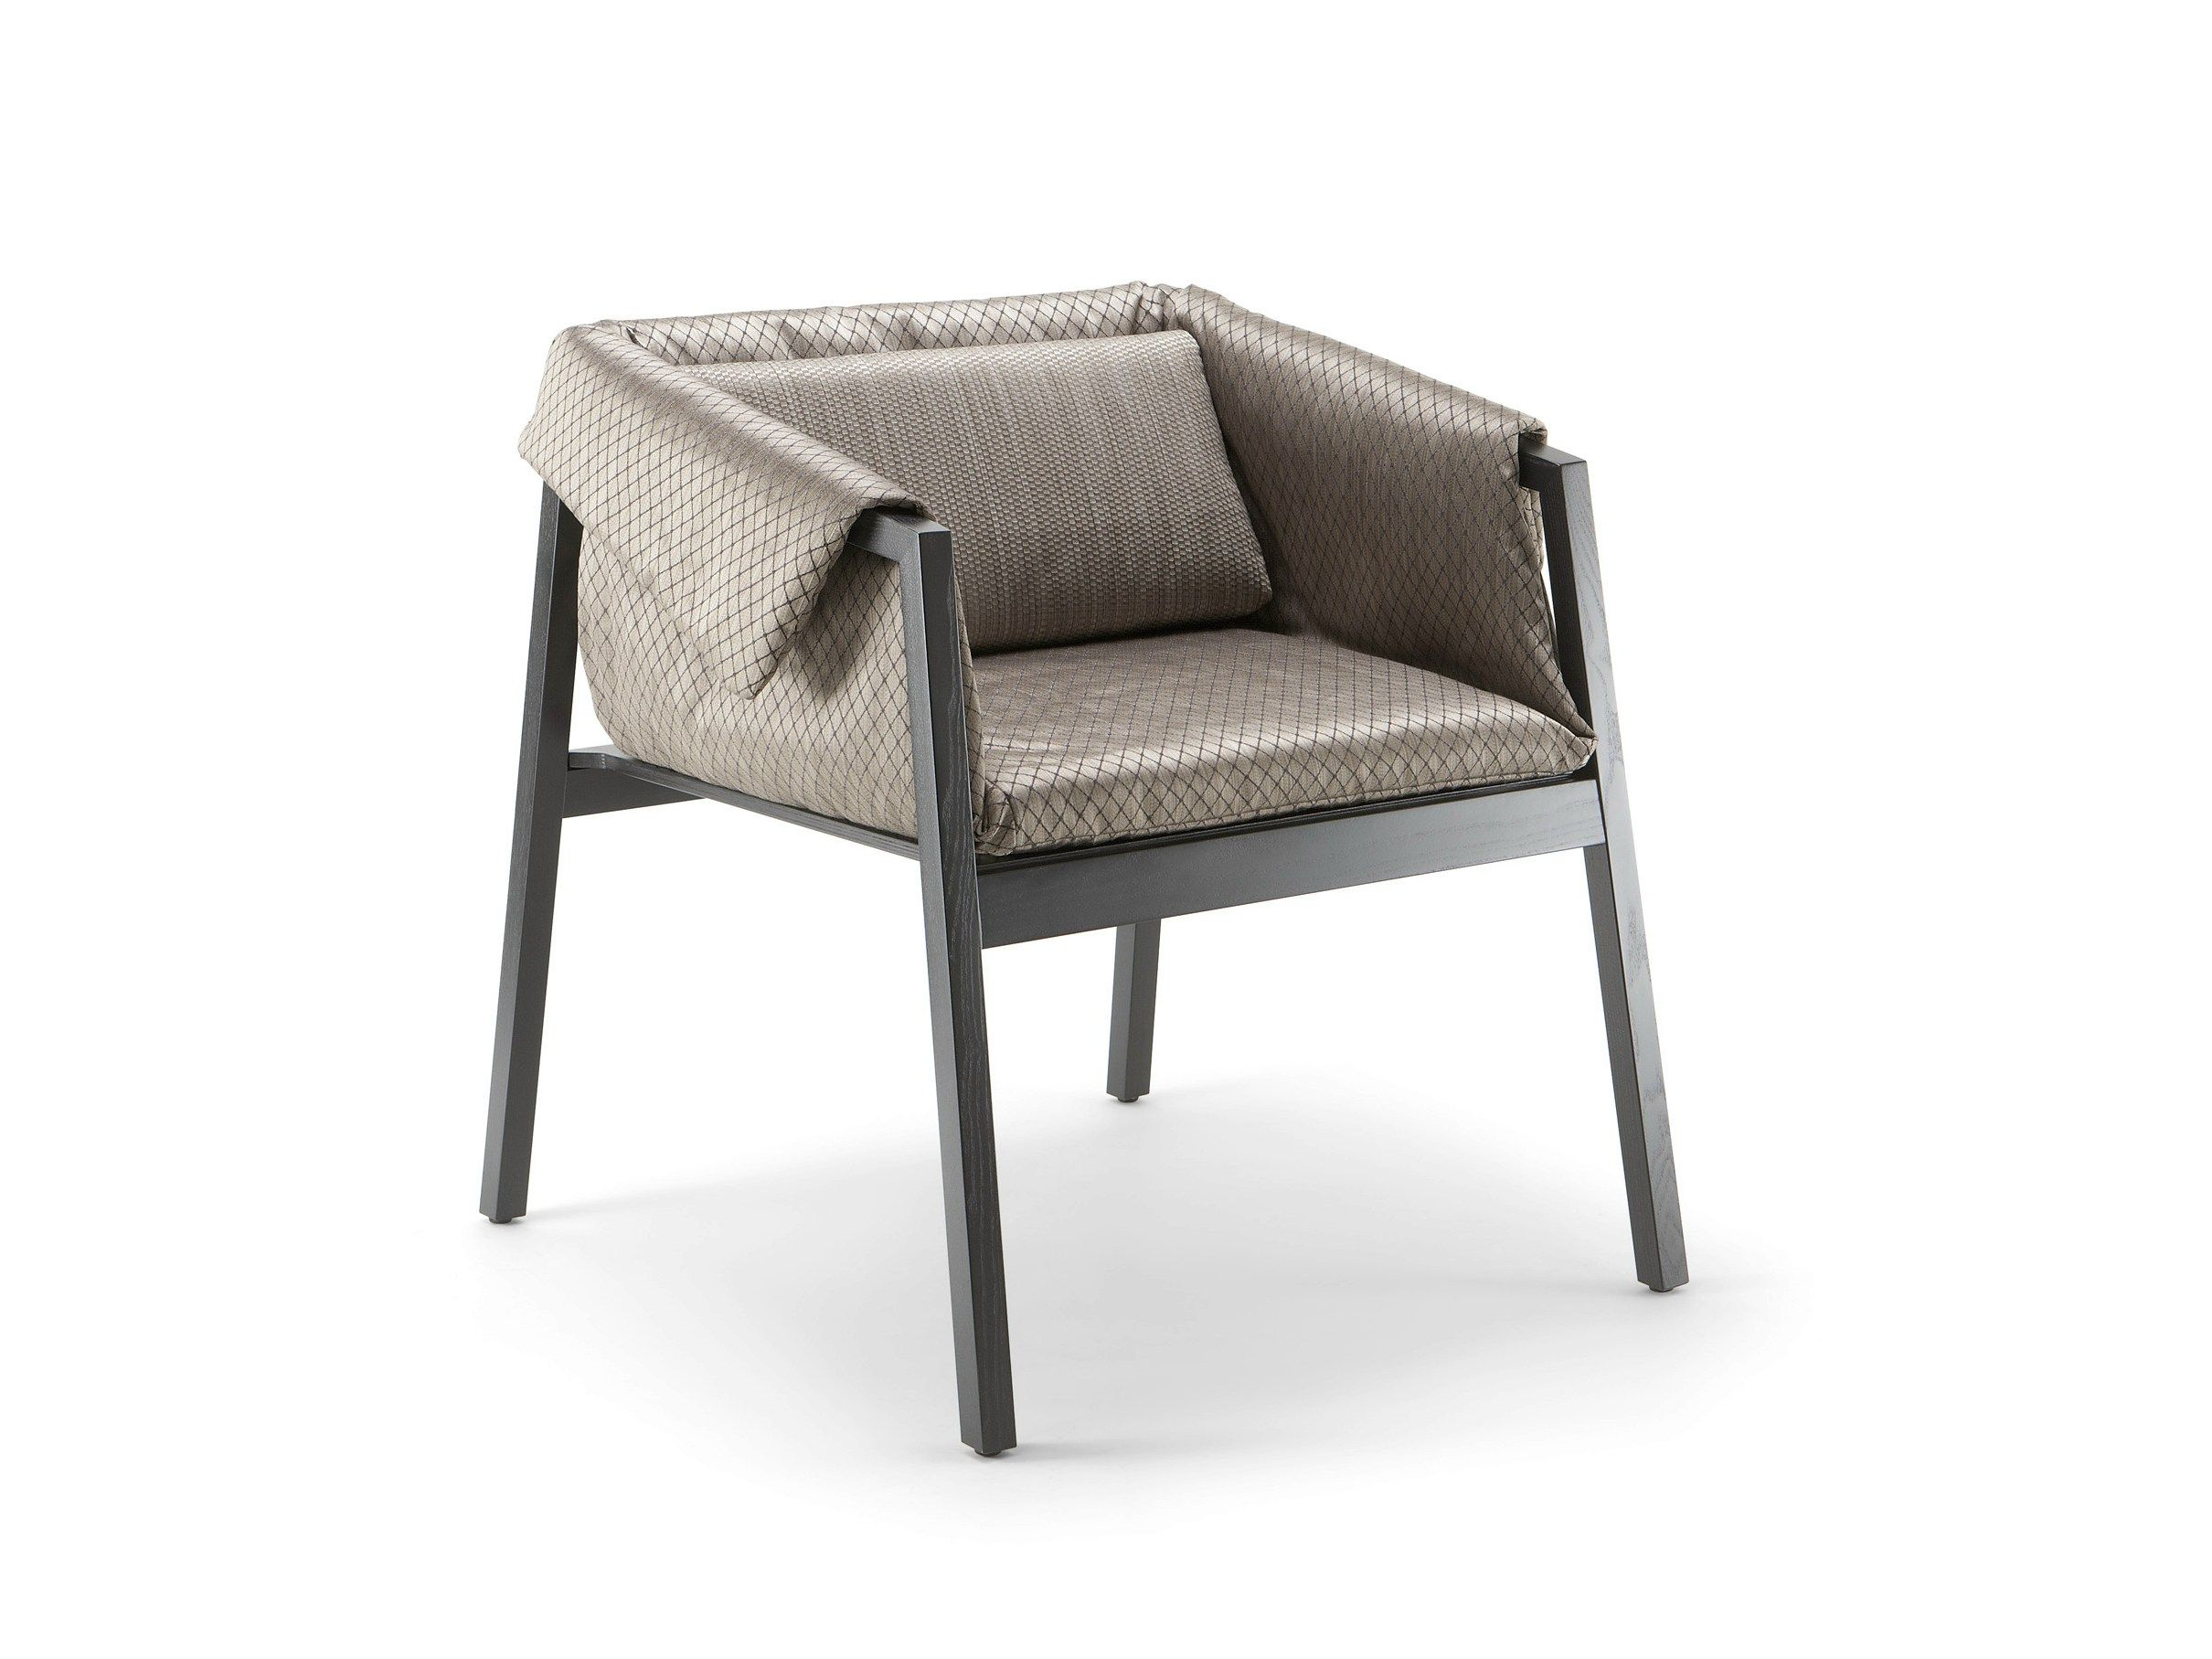 Cizeta Sedie ~ Wooden easy chair with armrests pad premium collection by cizeta